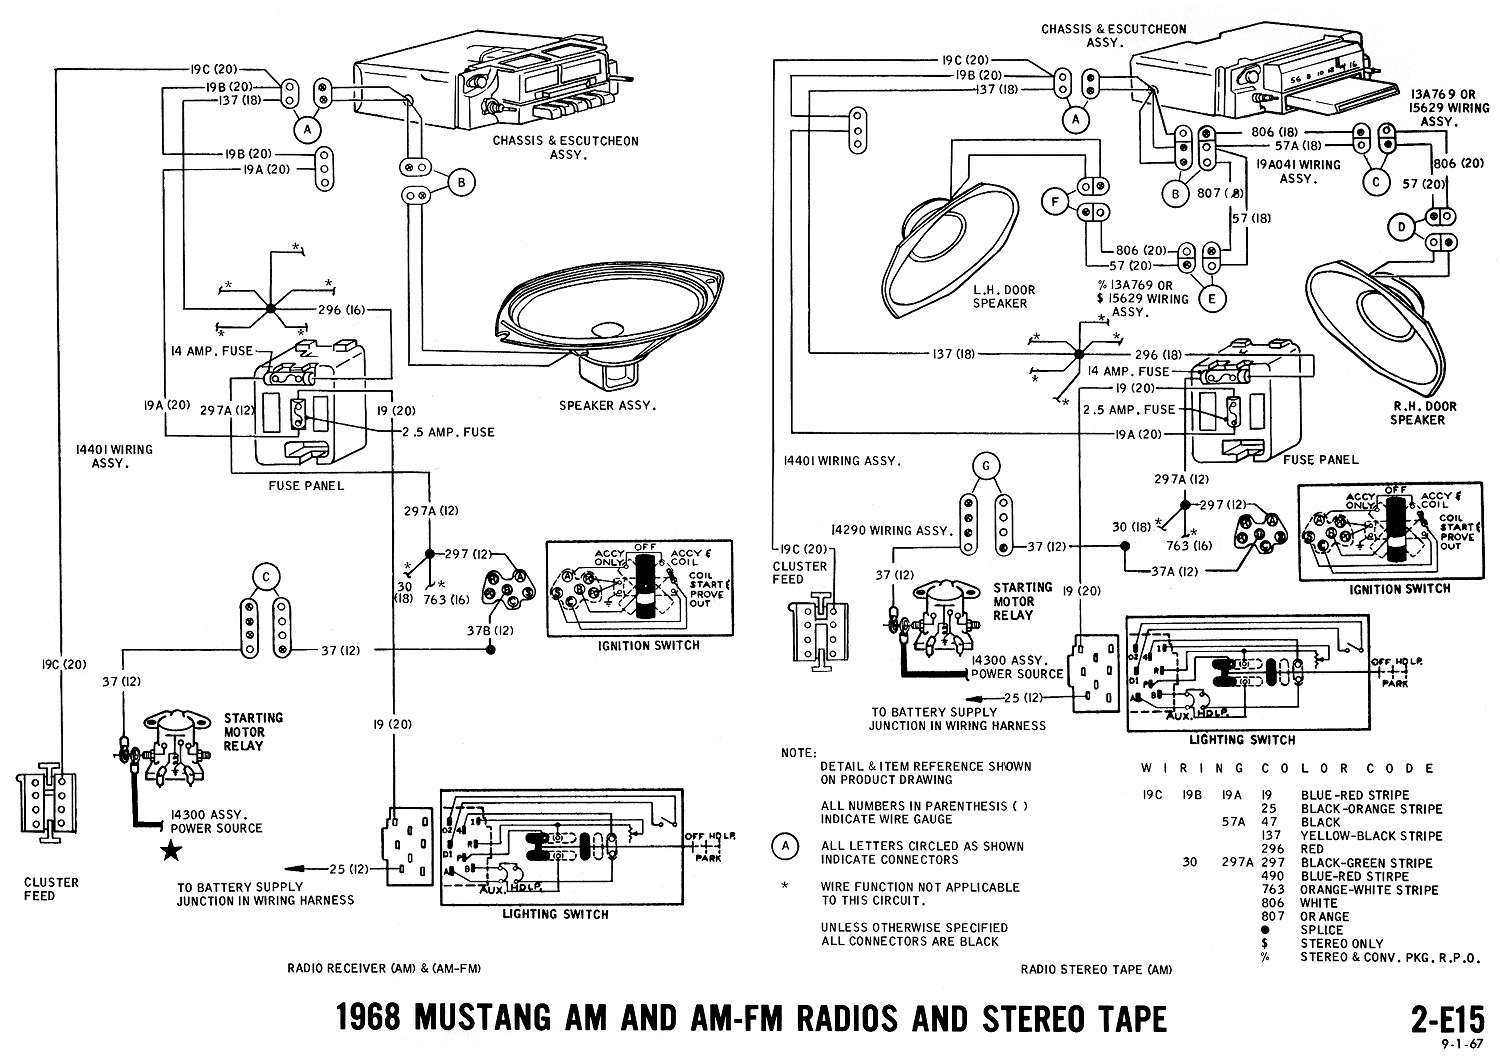 1999 ford mustang radio wiring diagram marathon electric motor problems 2014 gt autos weblog